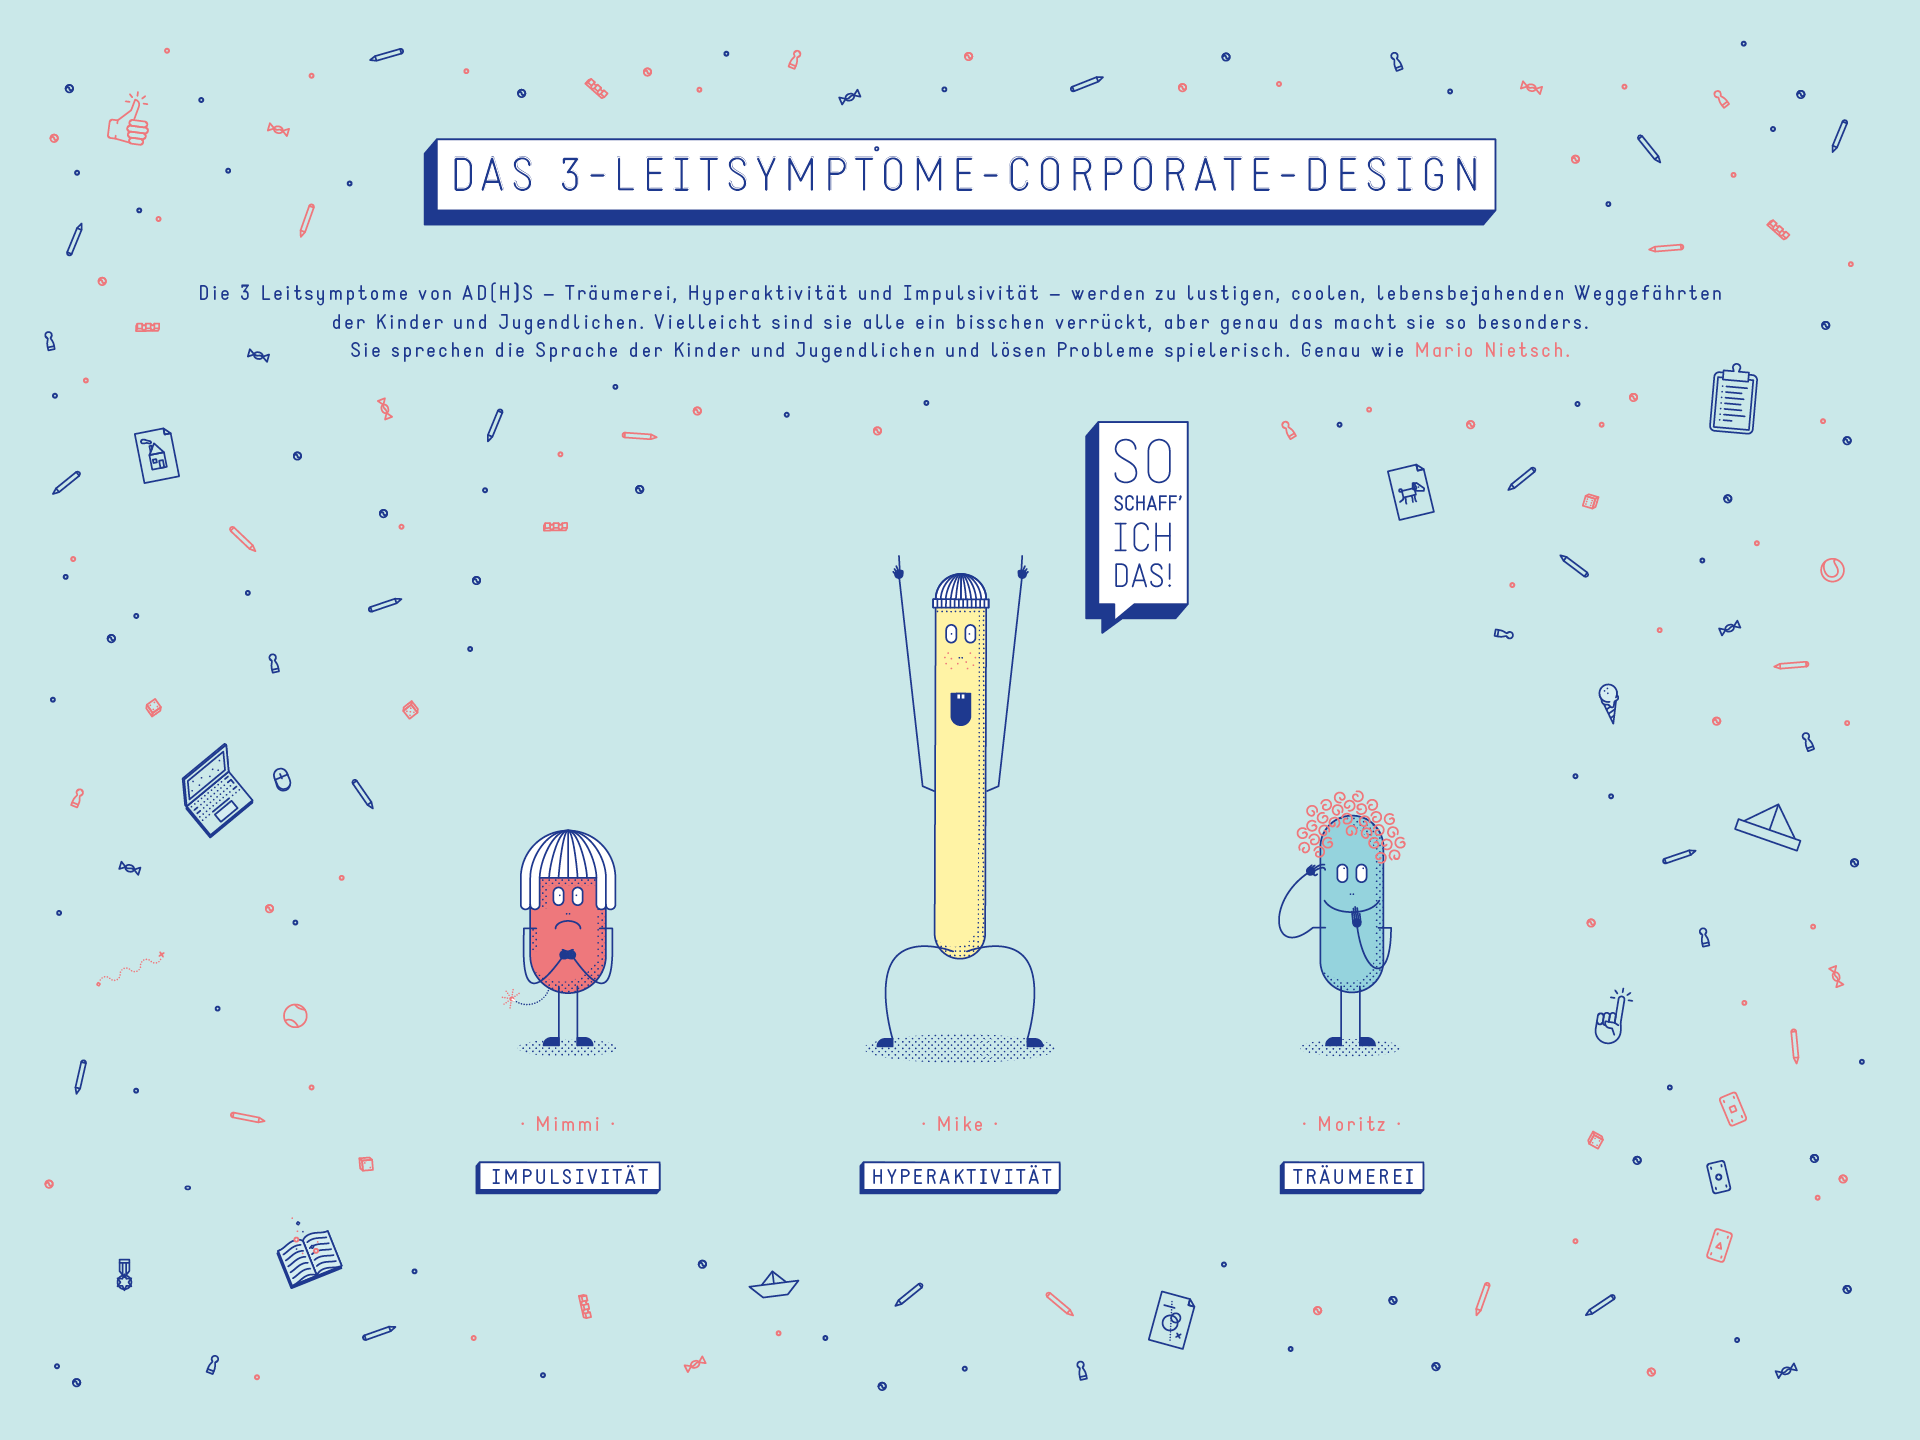 Das 3-Leitsymptome-Corporate-Design